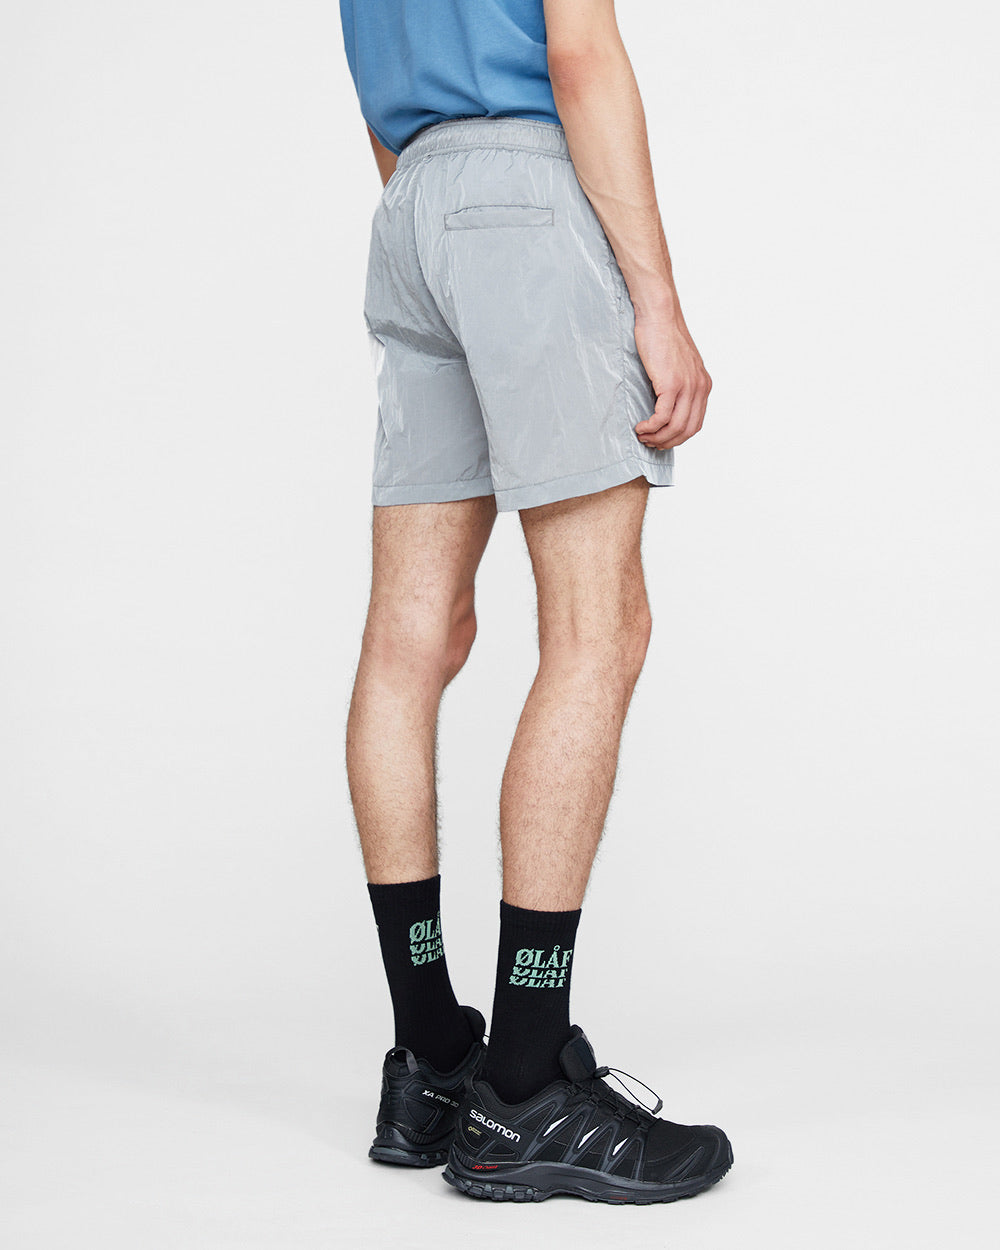 ØLÅF Nylon Shorts <br>Grey